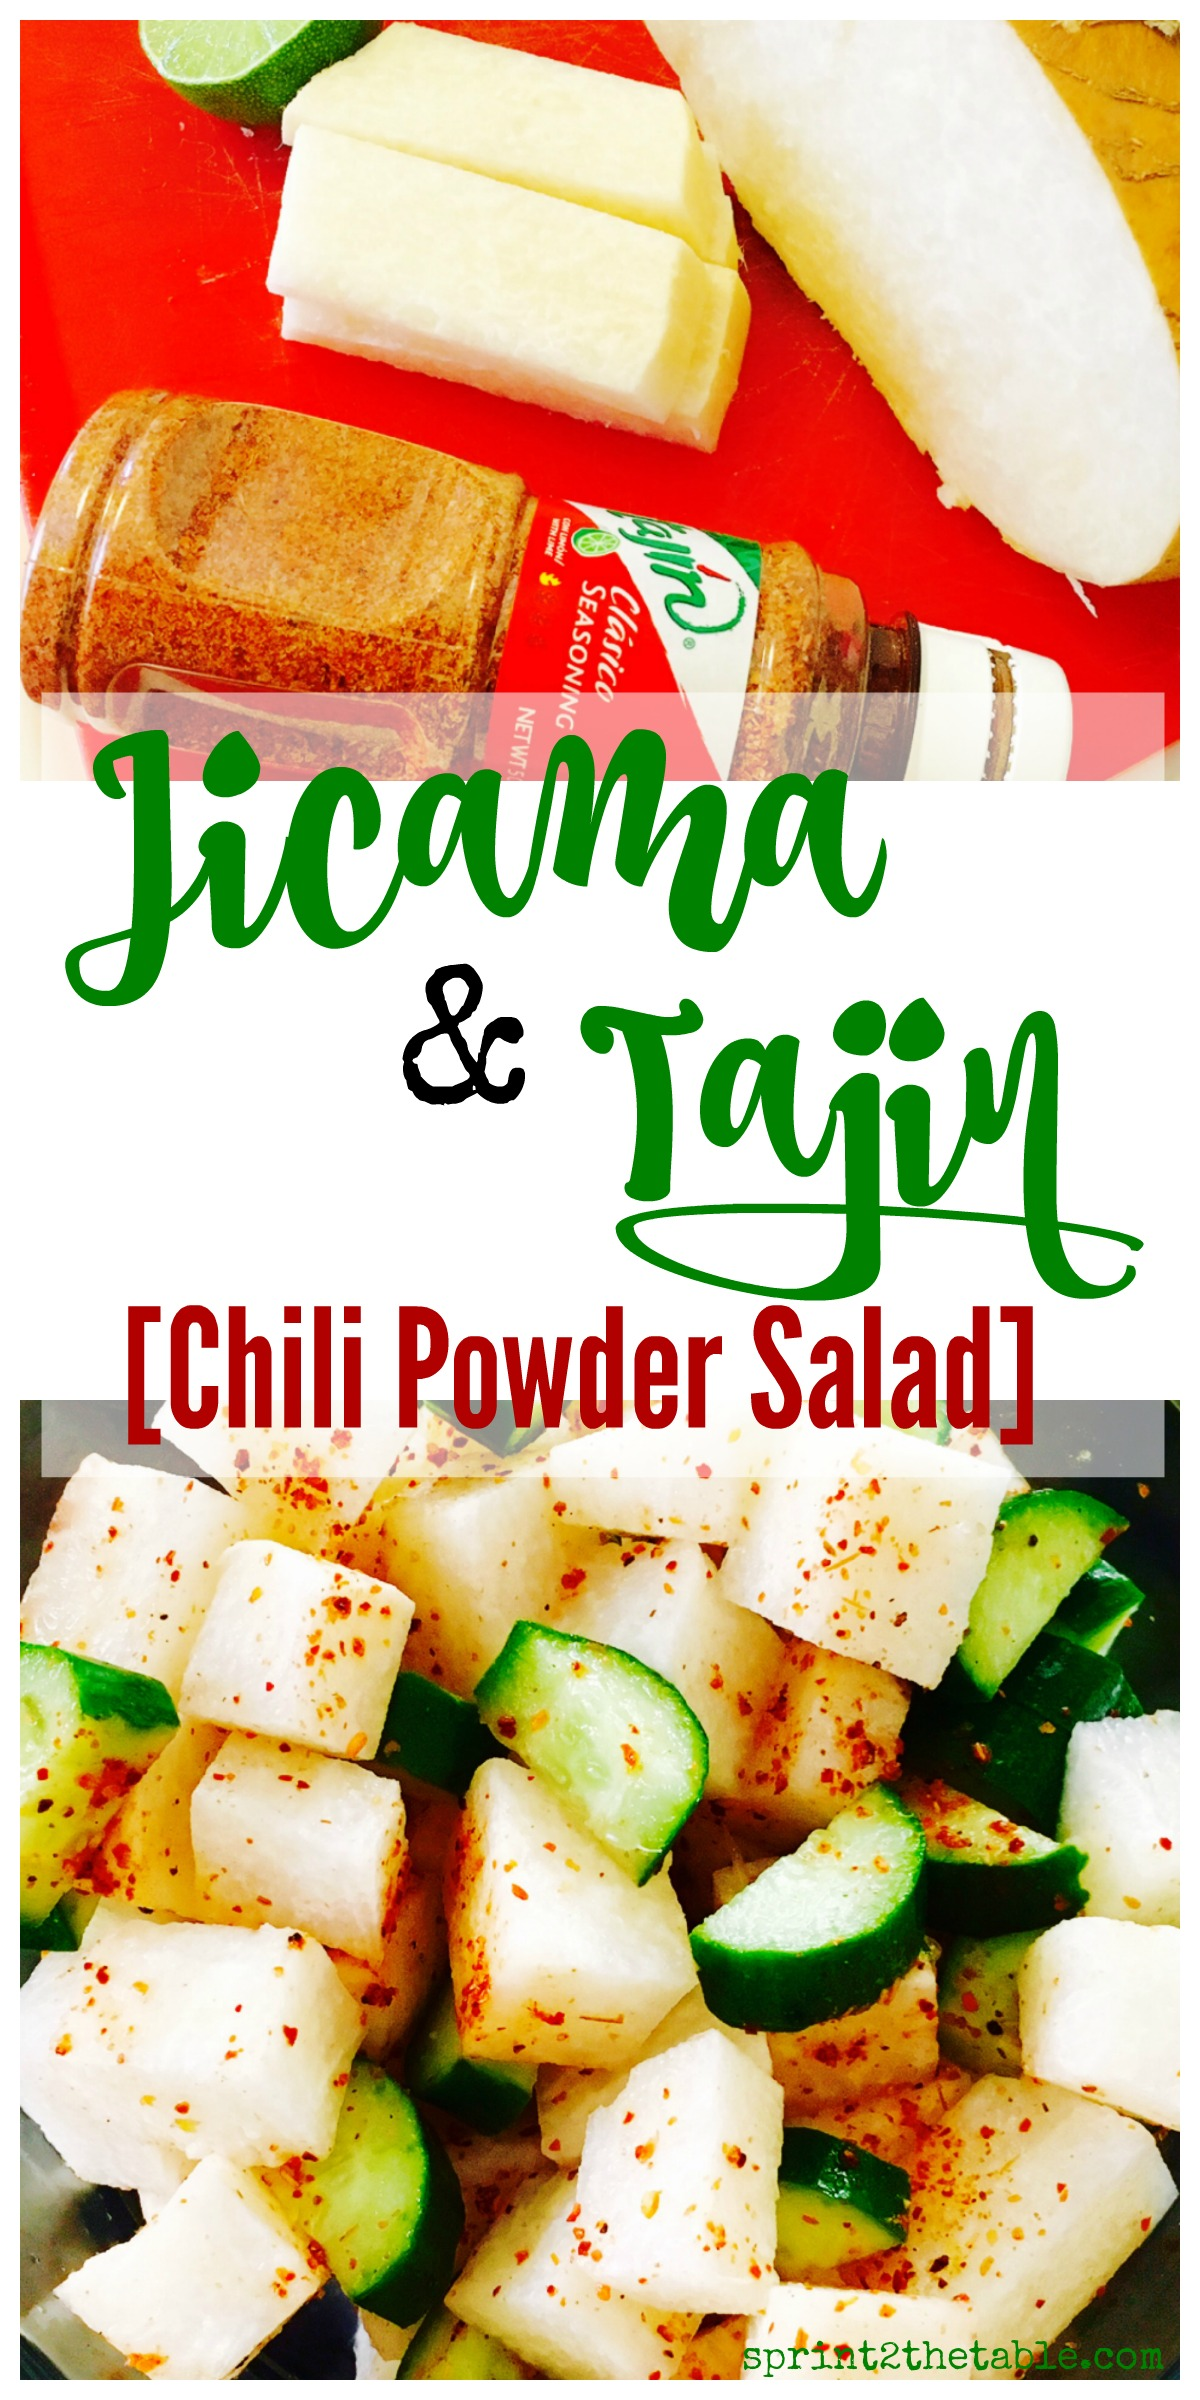 This light and healthy Jicama Tajin Salad is a quick & easy side or snack!